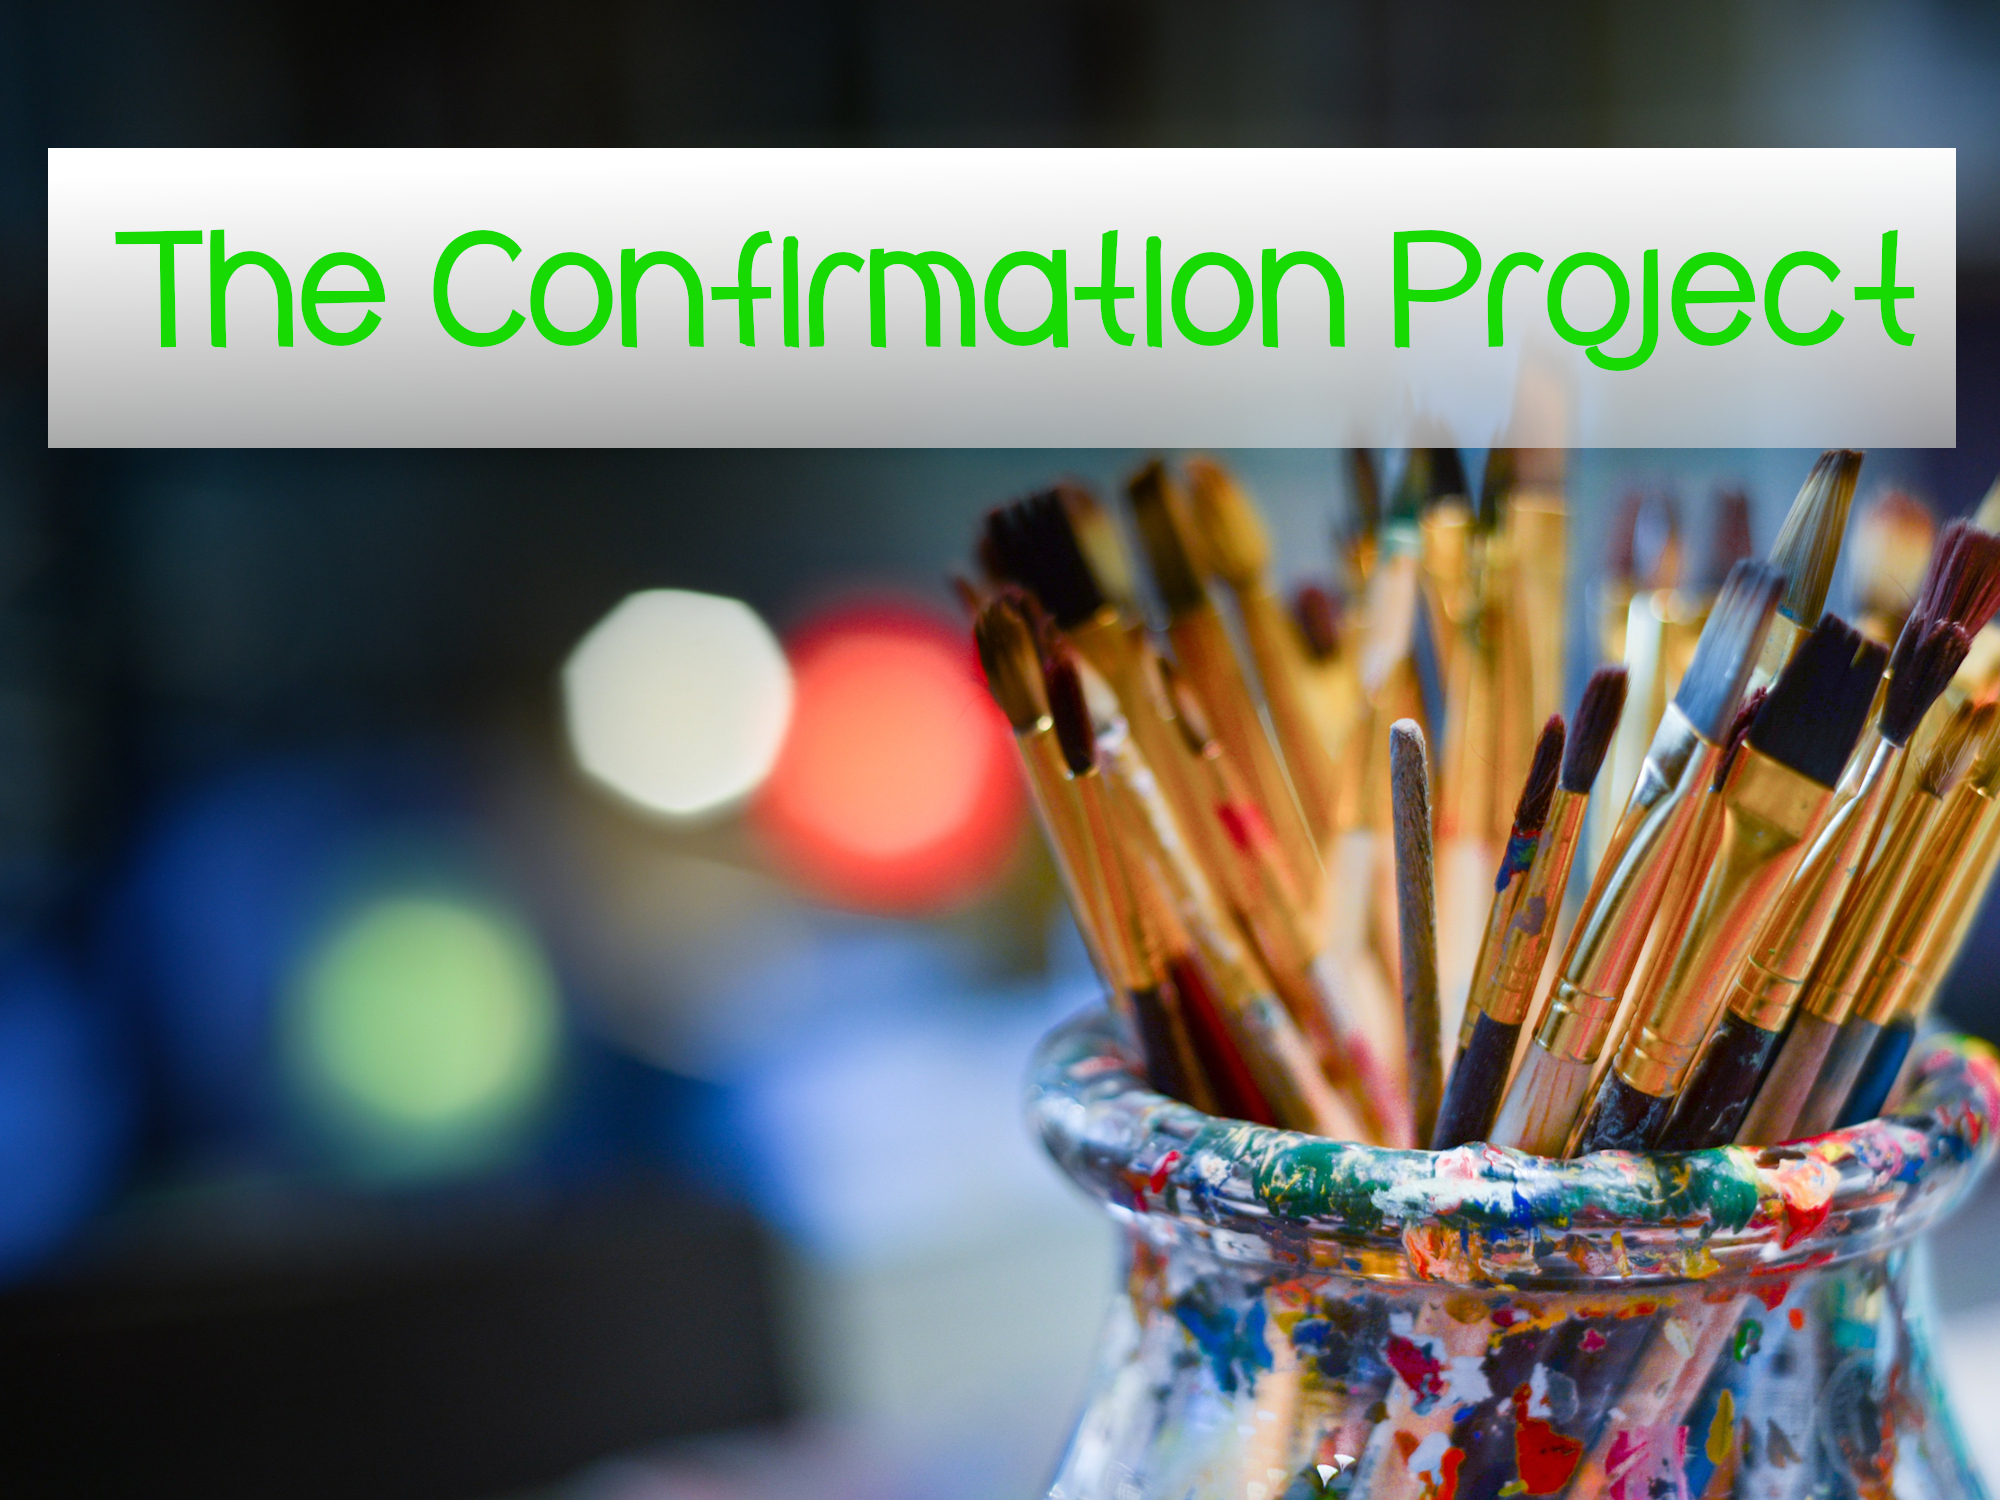 The Confirmation Project [link]